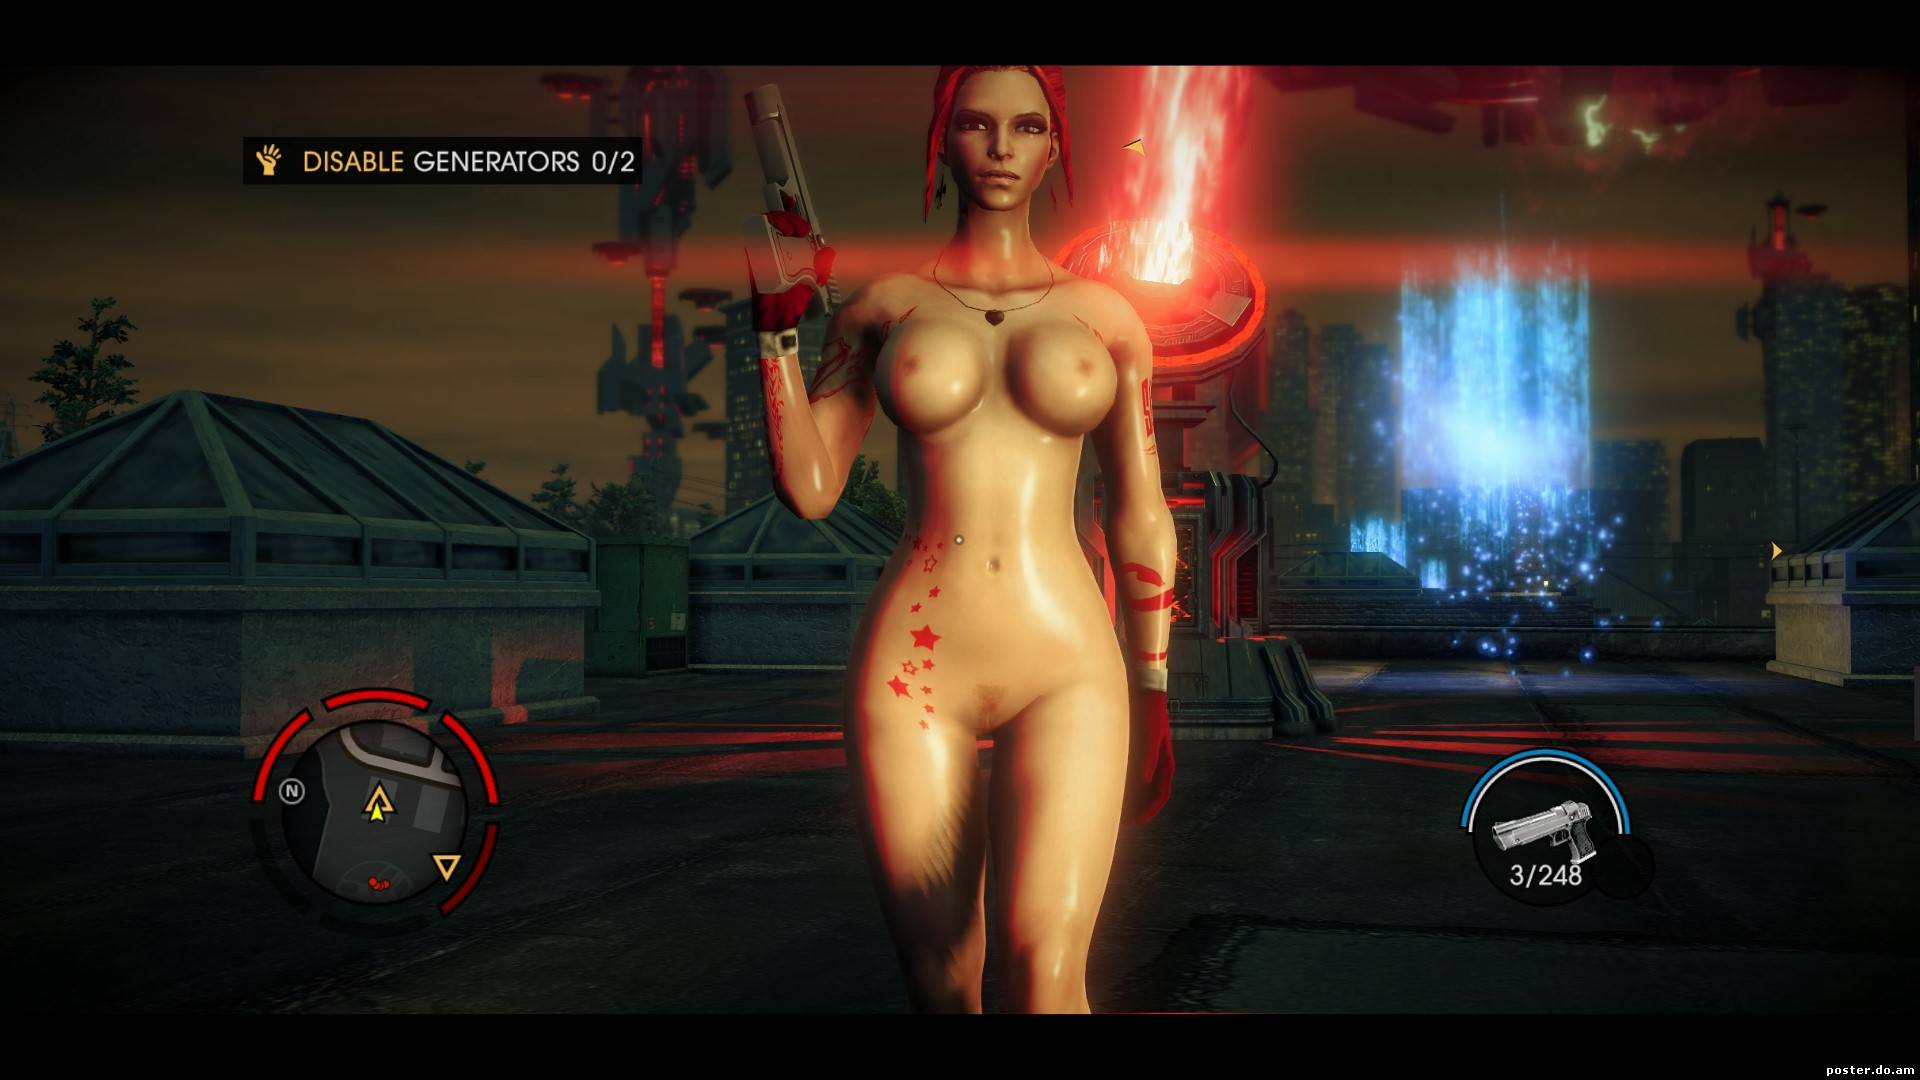 Saints row free sex pic naked toons